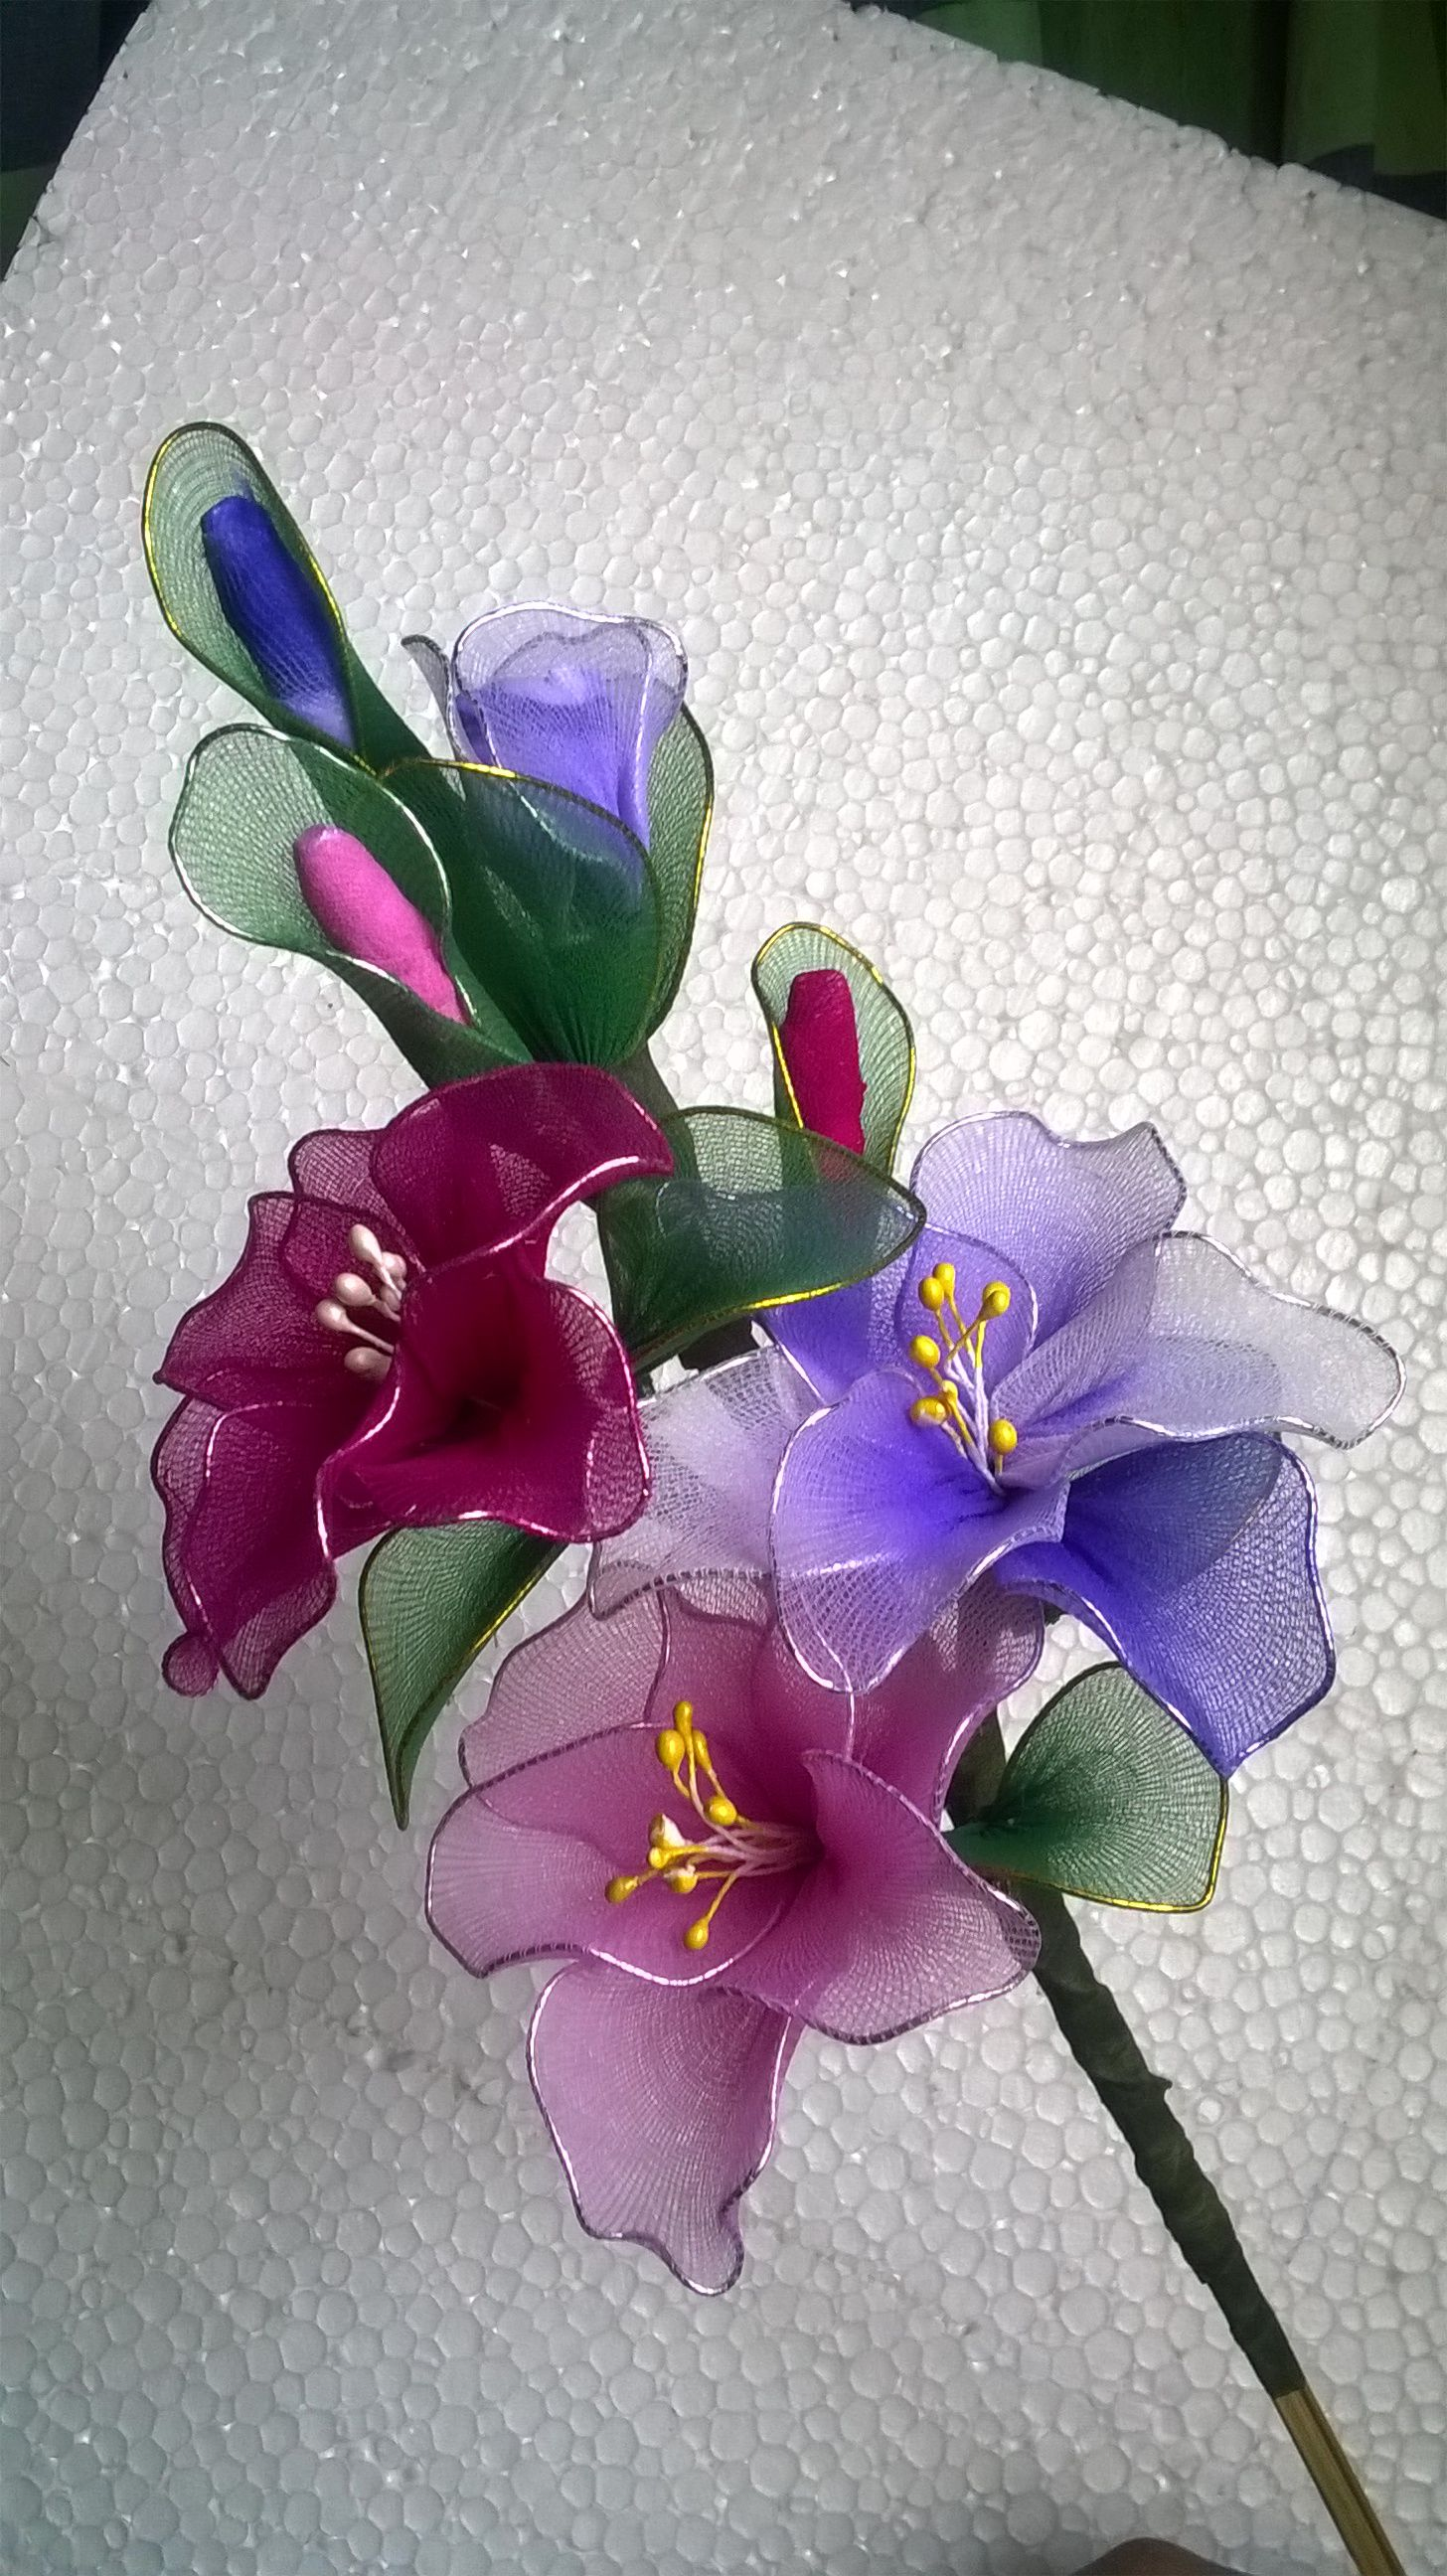 Flower Bunch From Stocking Cloth Crafts To Do Pinterest Flower